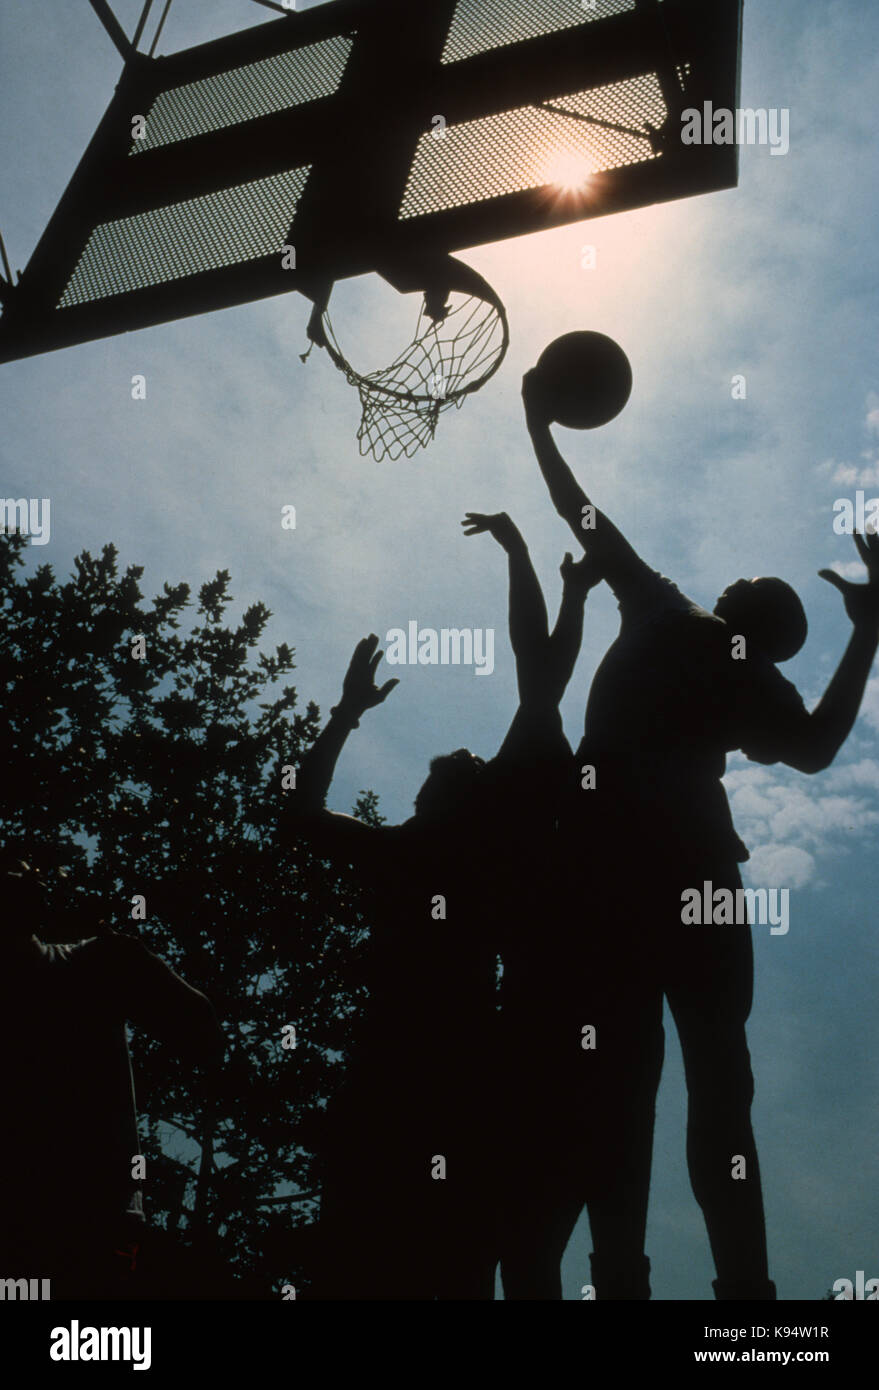 """Players fighting for a rebound during street basketball game in """"the cage"""" in New York City's Greenwich Village, Stock Photo"""